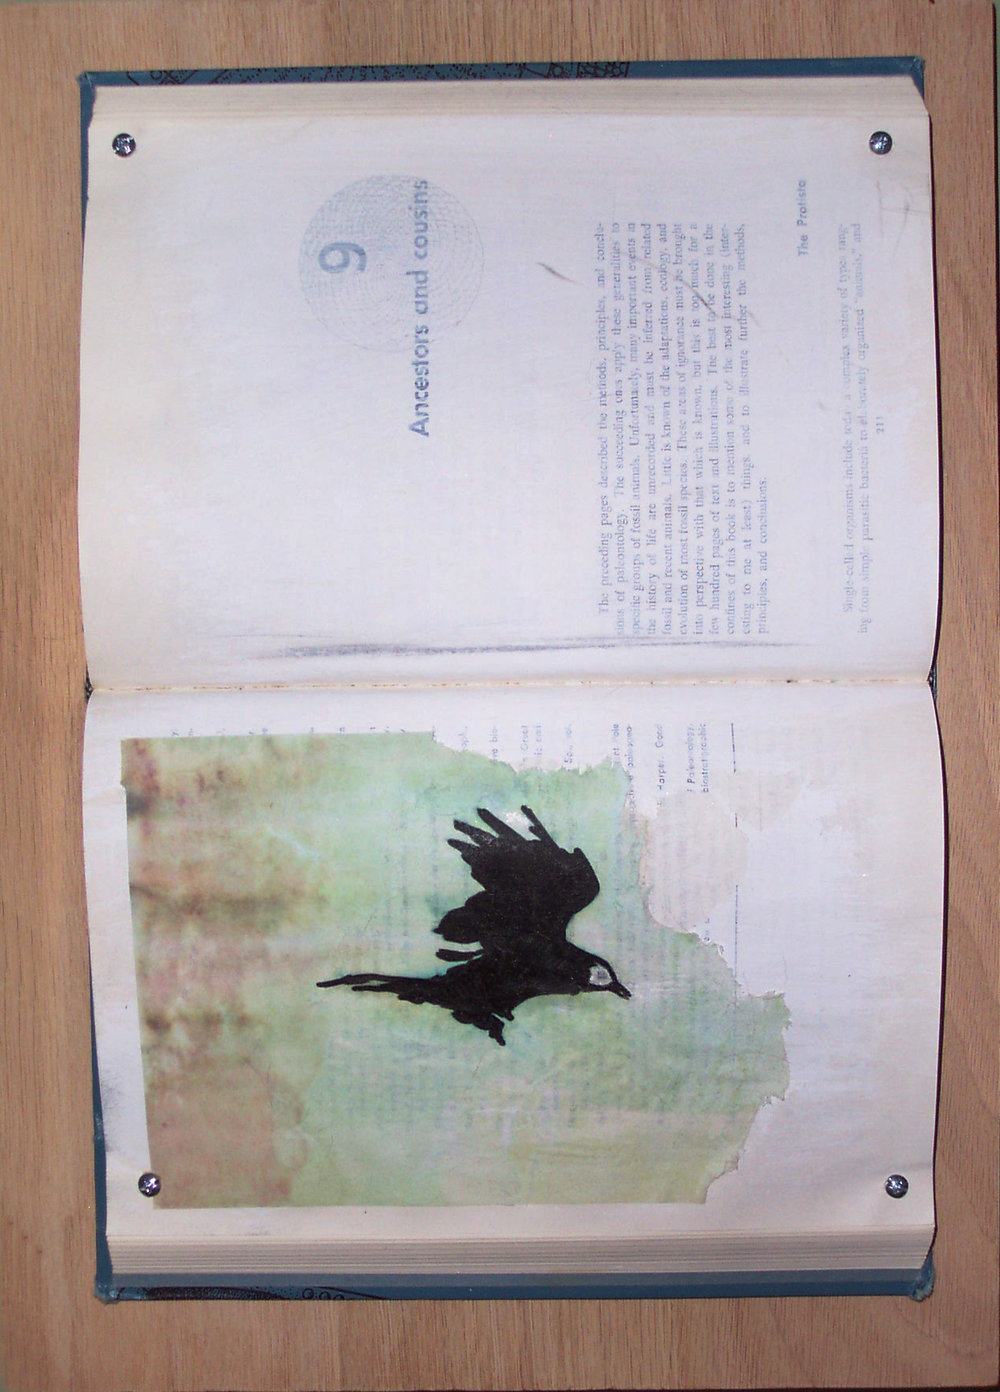 As the Crow Flies (pt. 2). 2008. Altered book, transfer print, ink illustration, gesso, screws, oak. -